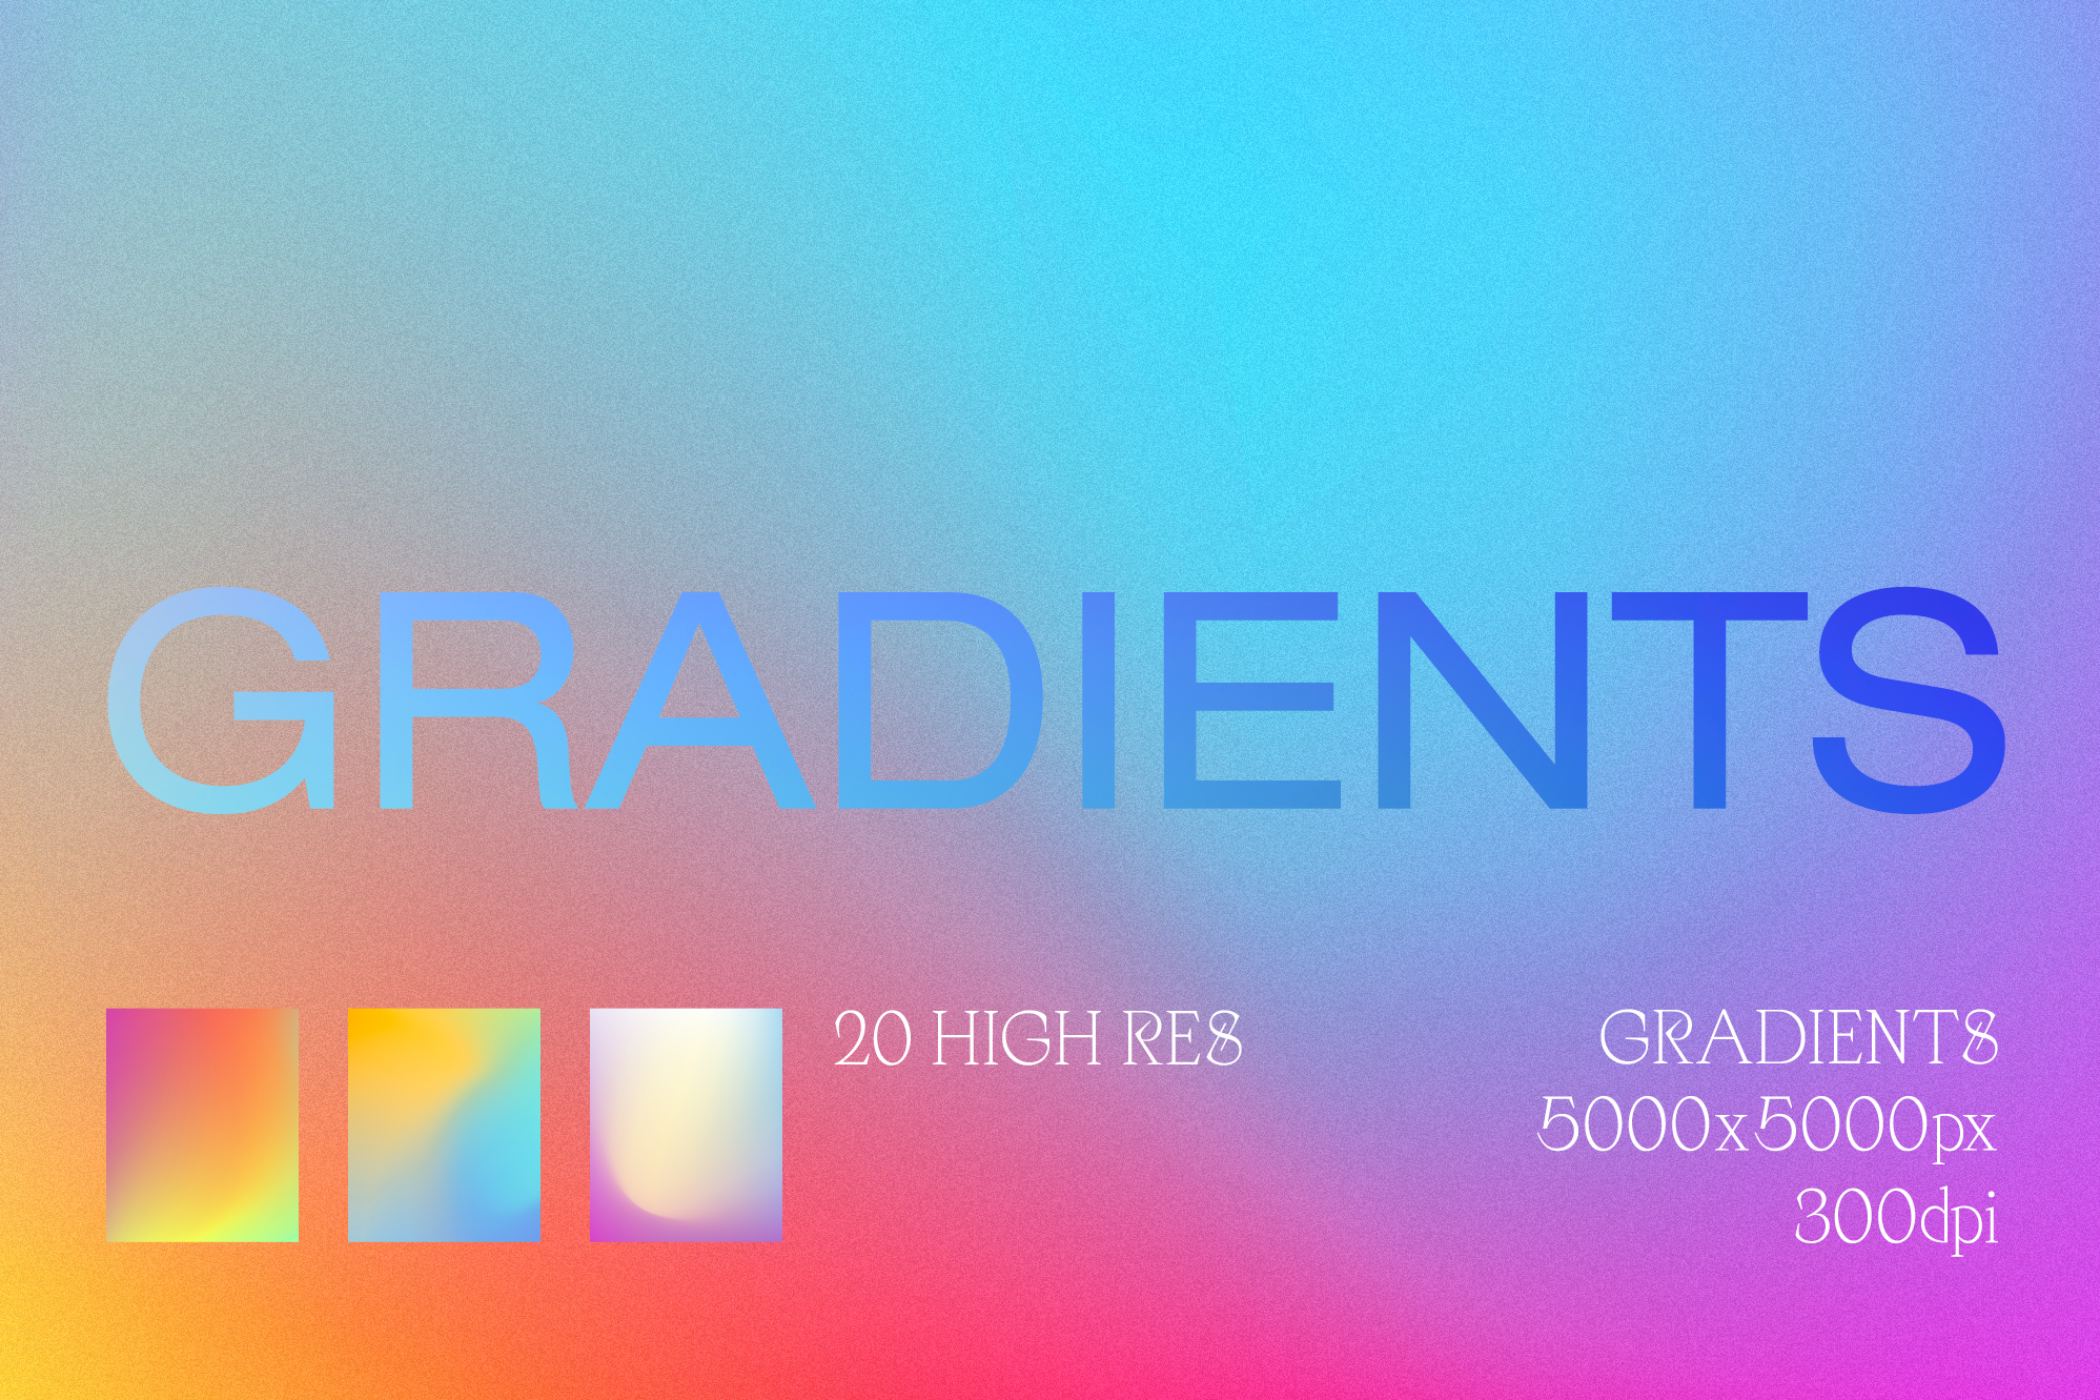 https://nusupply.co/wp-content/uploads/2019/12/ProductCover-Gradients-2100x1400.png